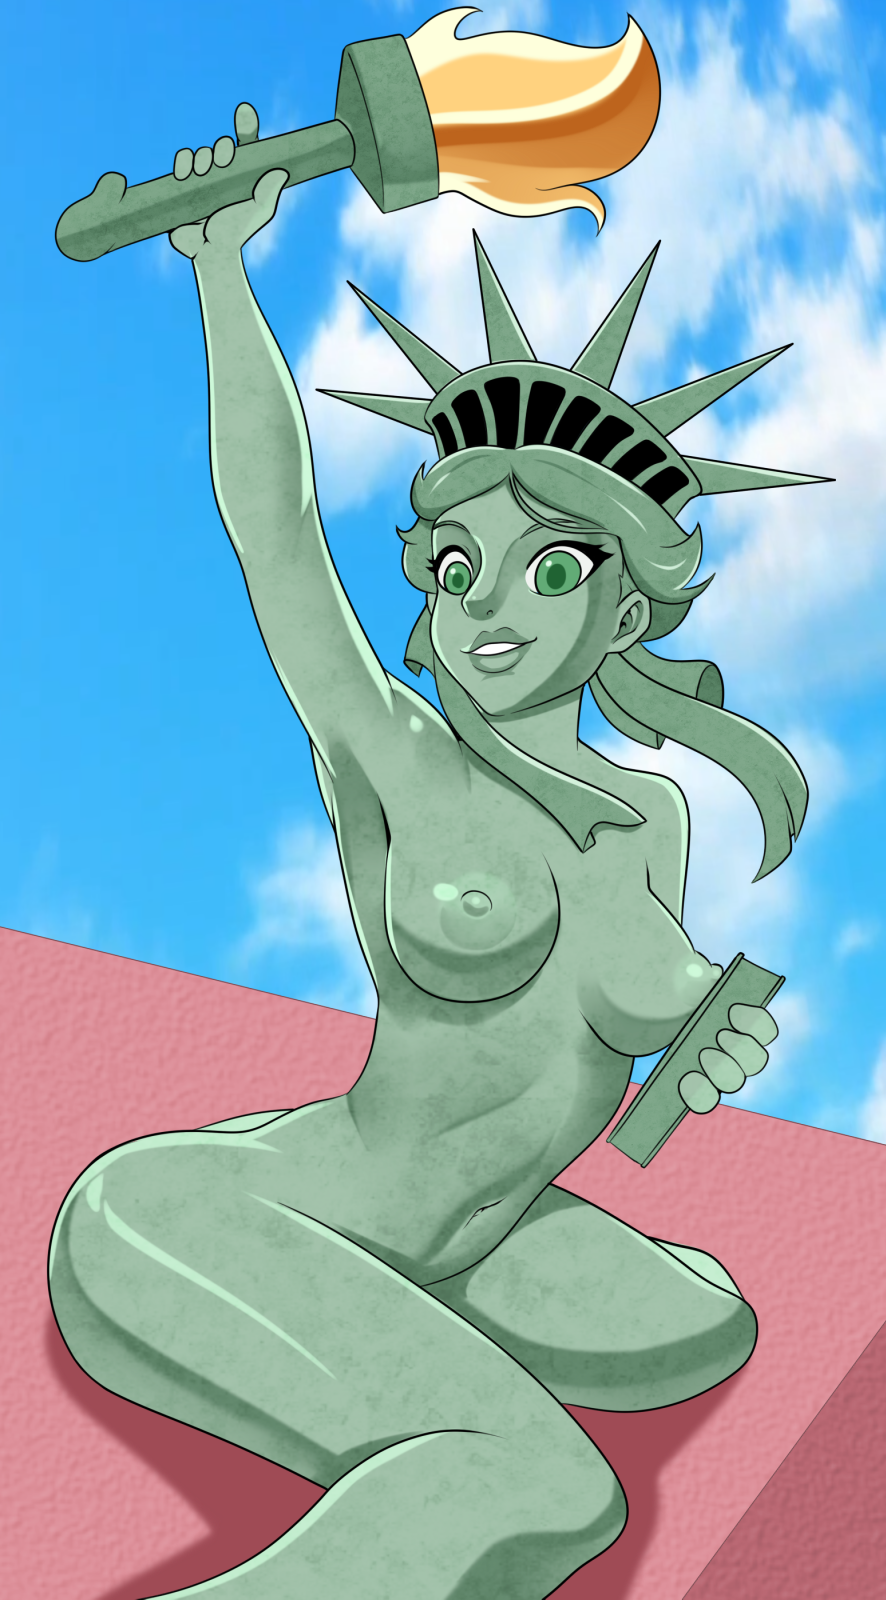 kissing liberty lady justice statue of The grim adventures of billy and mandy substitute teacher